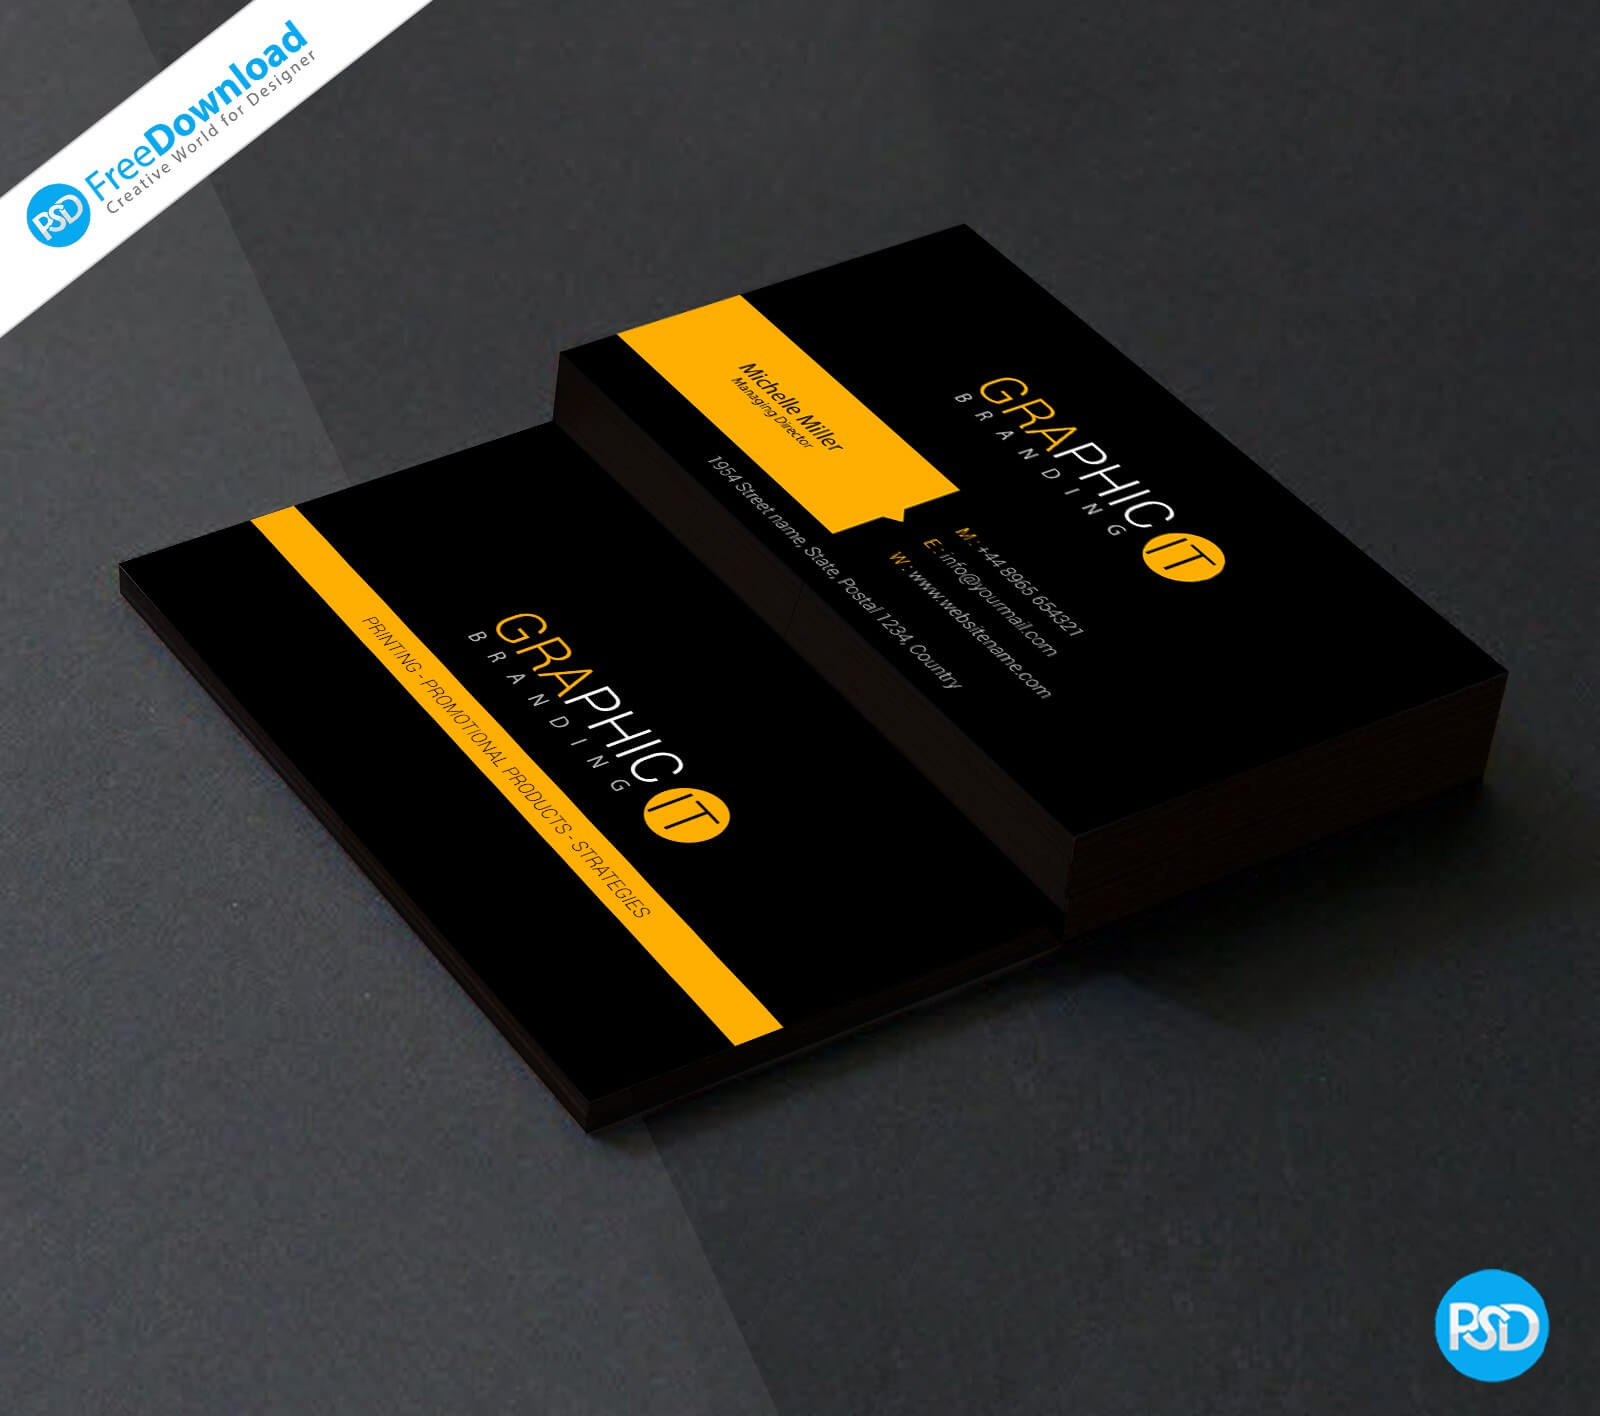 009 Template Ideas Photography Visiting Card Design Psd File Throughout Visiting Card Templates Psd Free Download